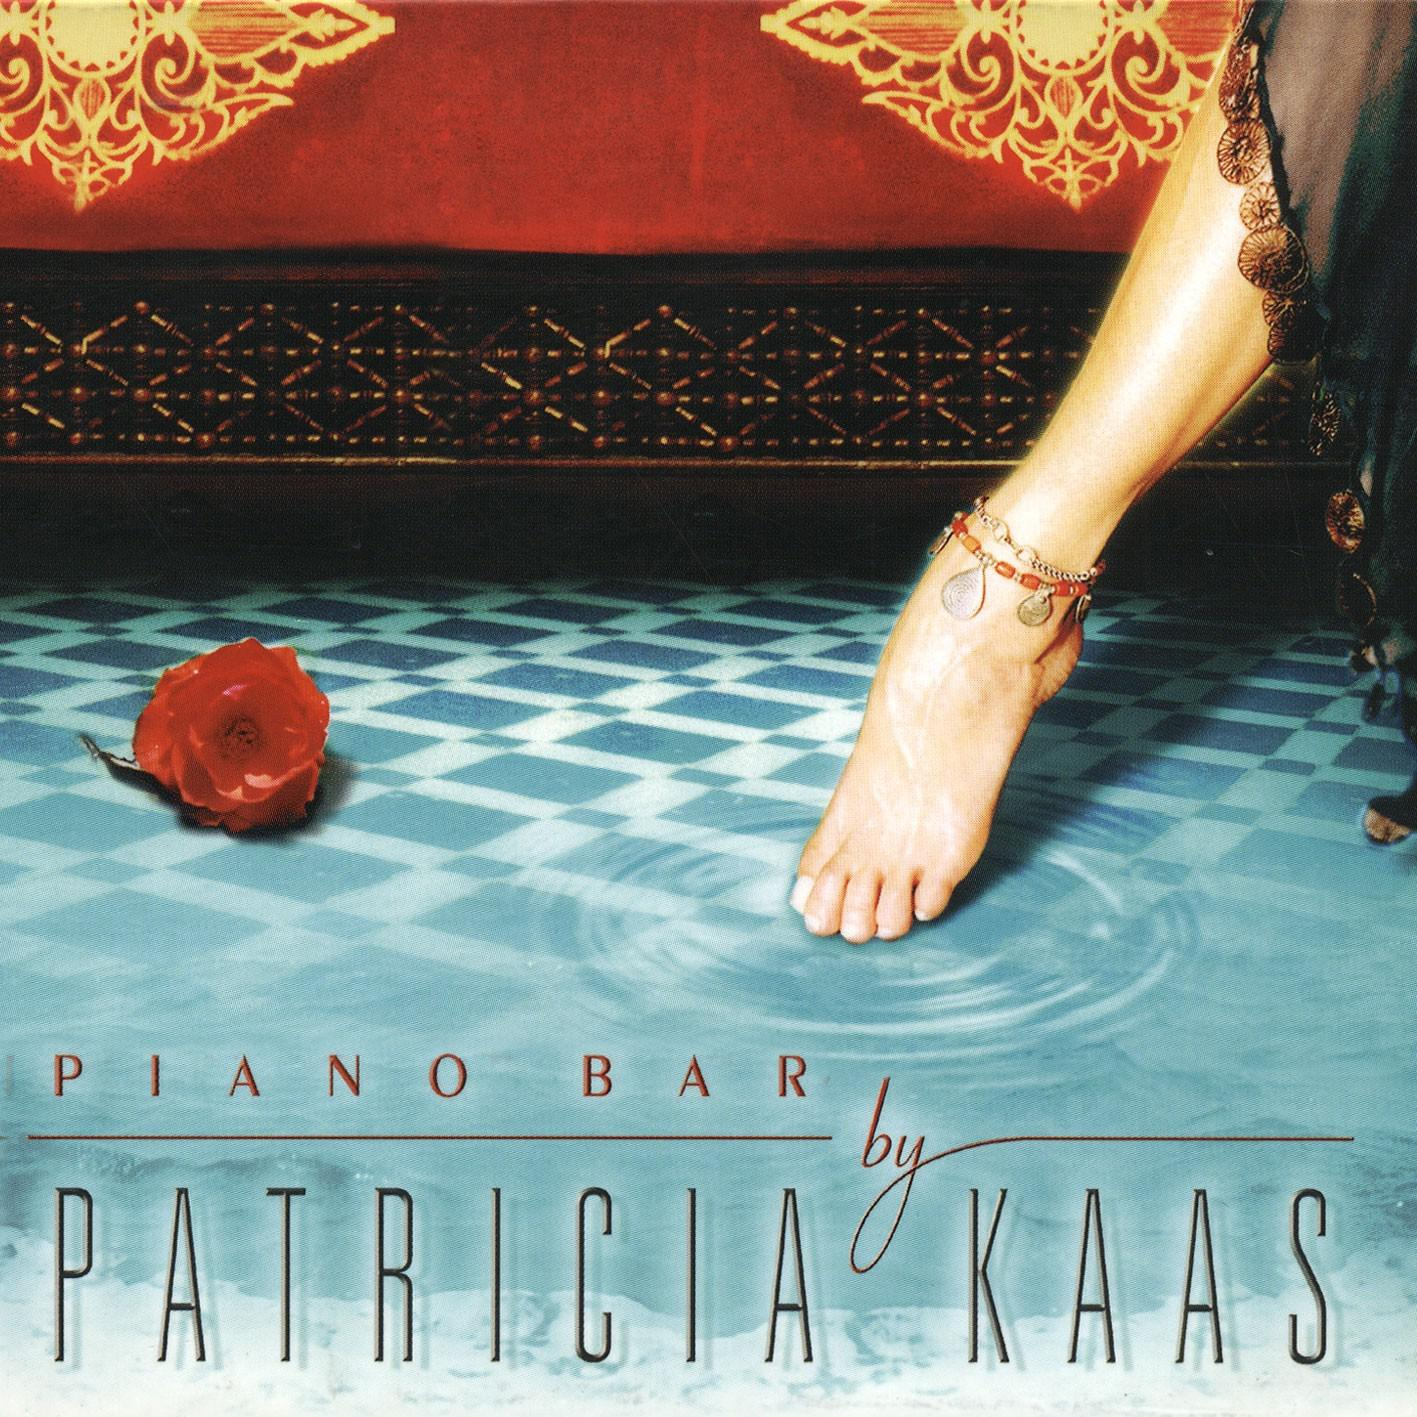 Patricia Kaas - Piano Bar [MULTI]